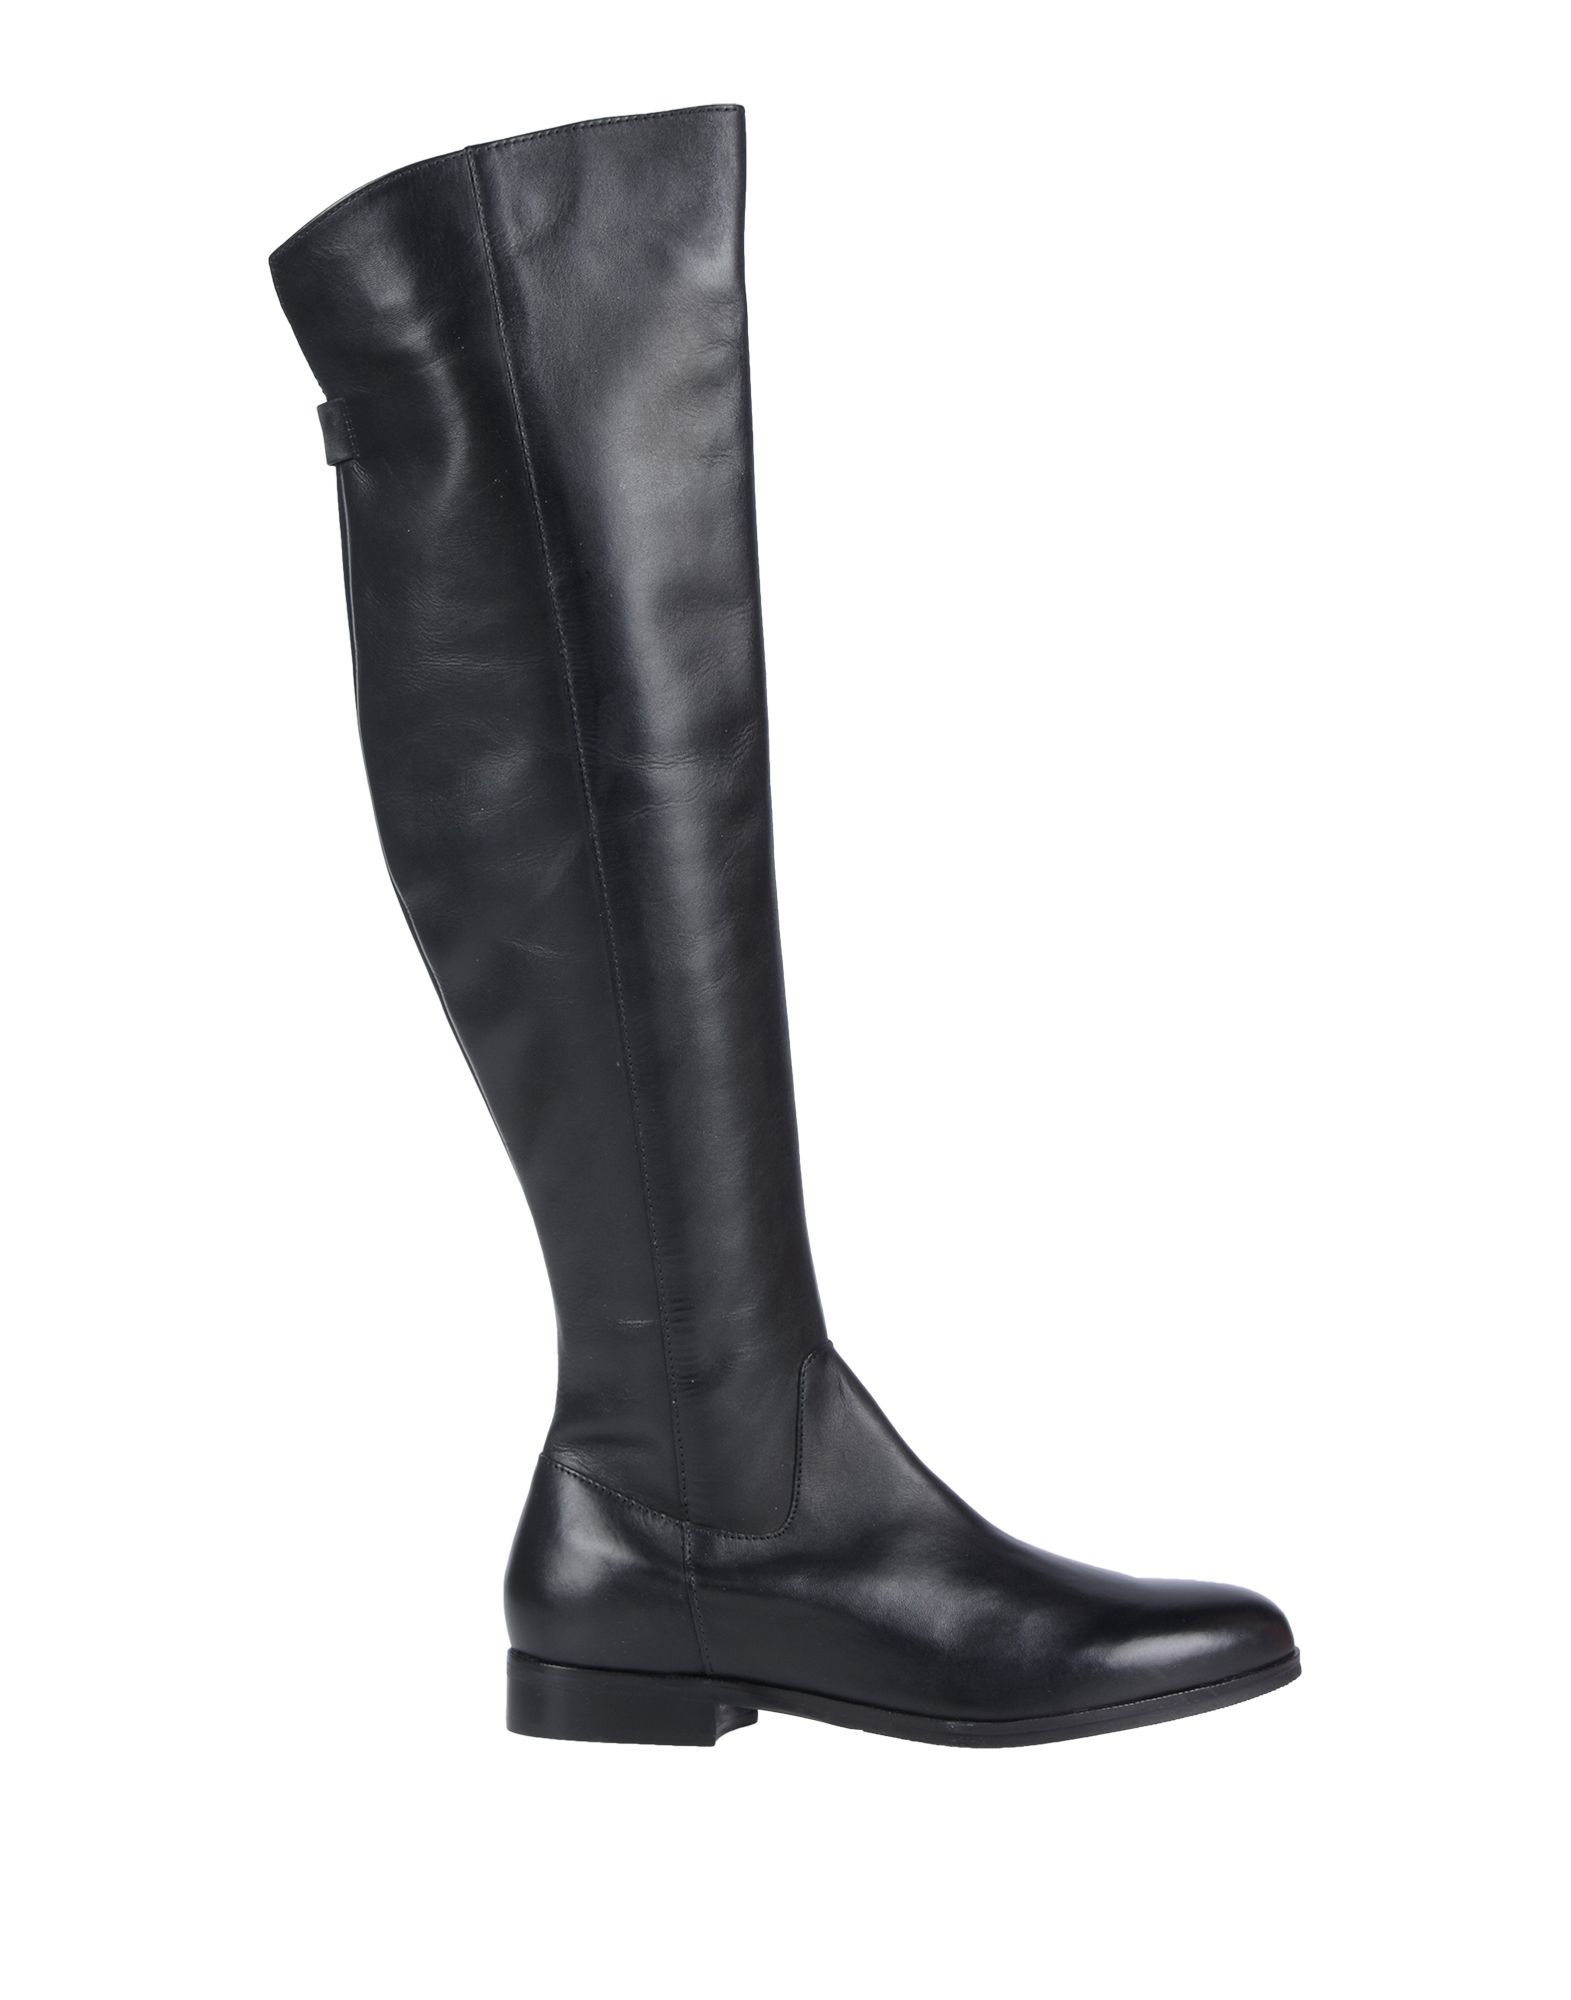 Cafenoir Black Leather Knee High Boots